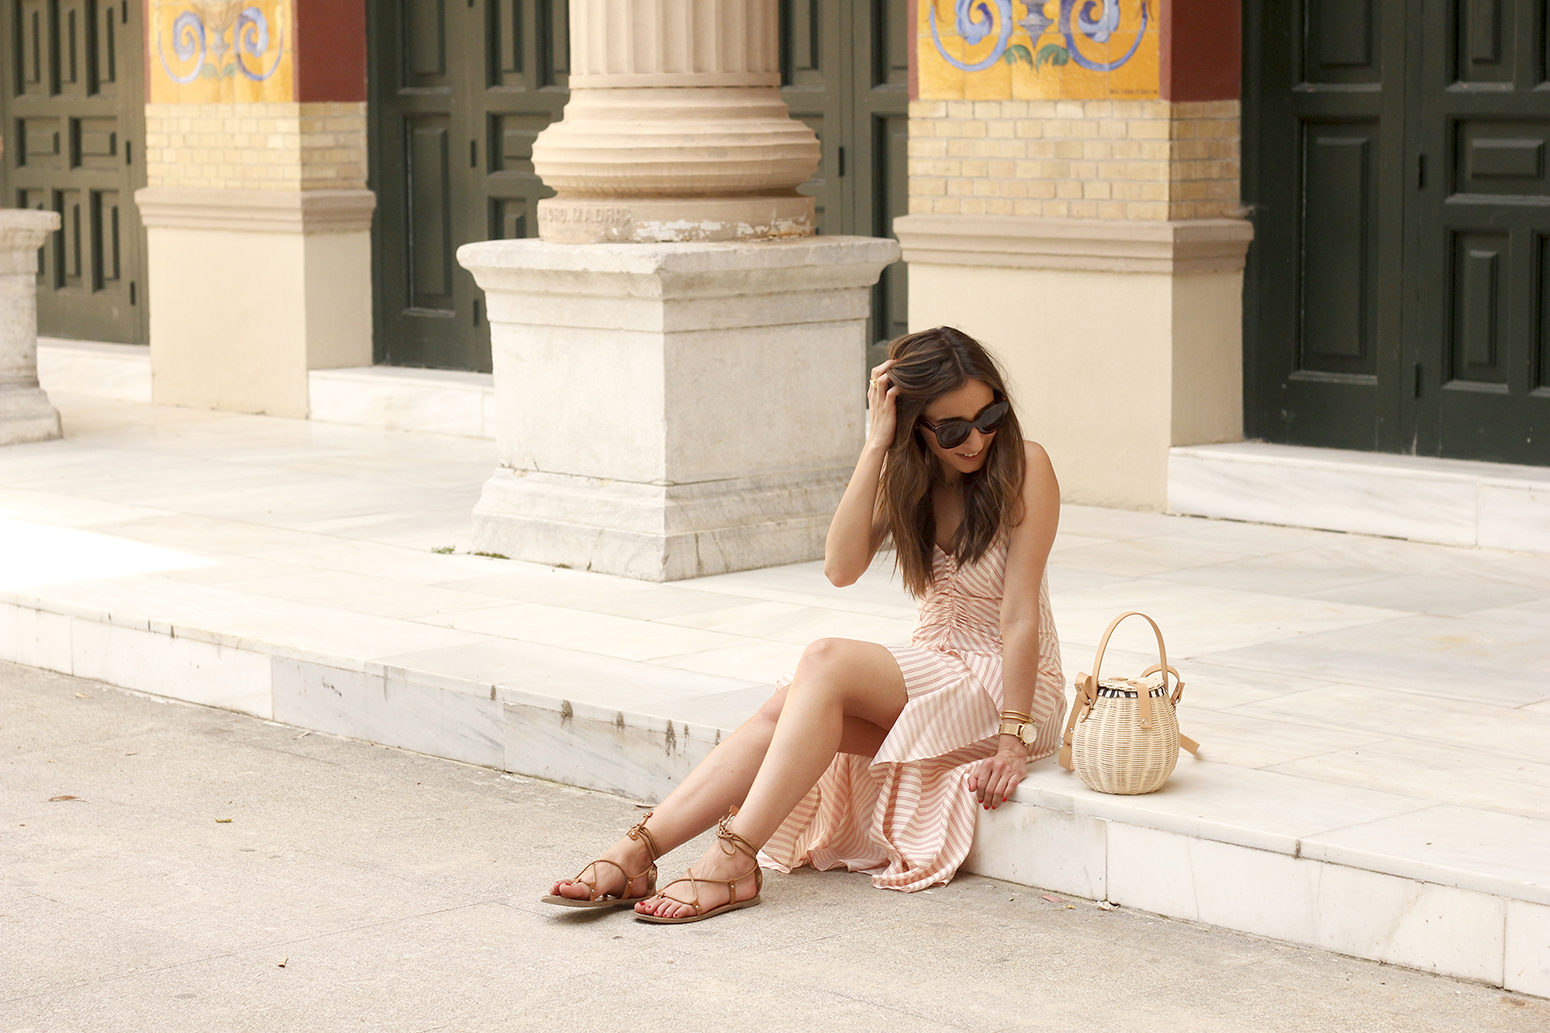 Perfect dress for summer flat sandals wicker bag céline sunnies style fashion outfit04